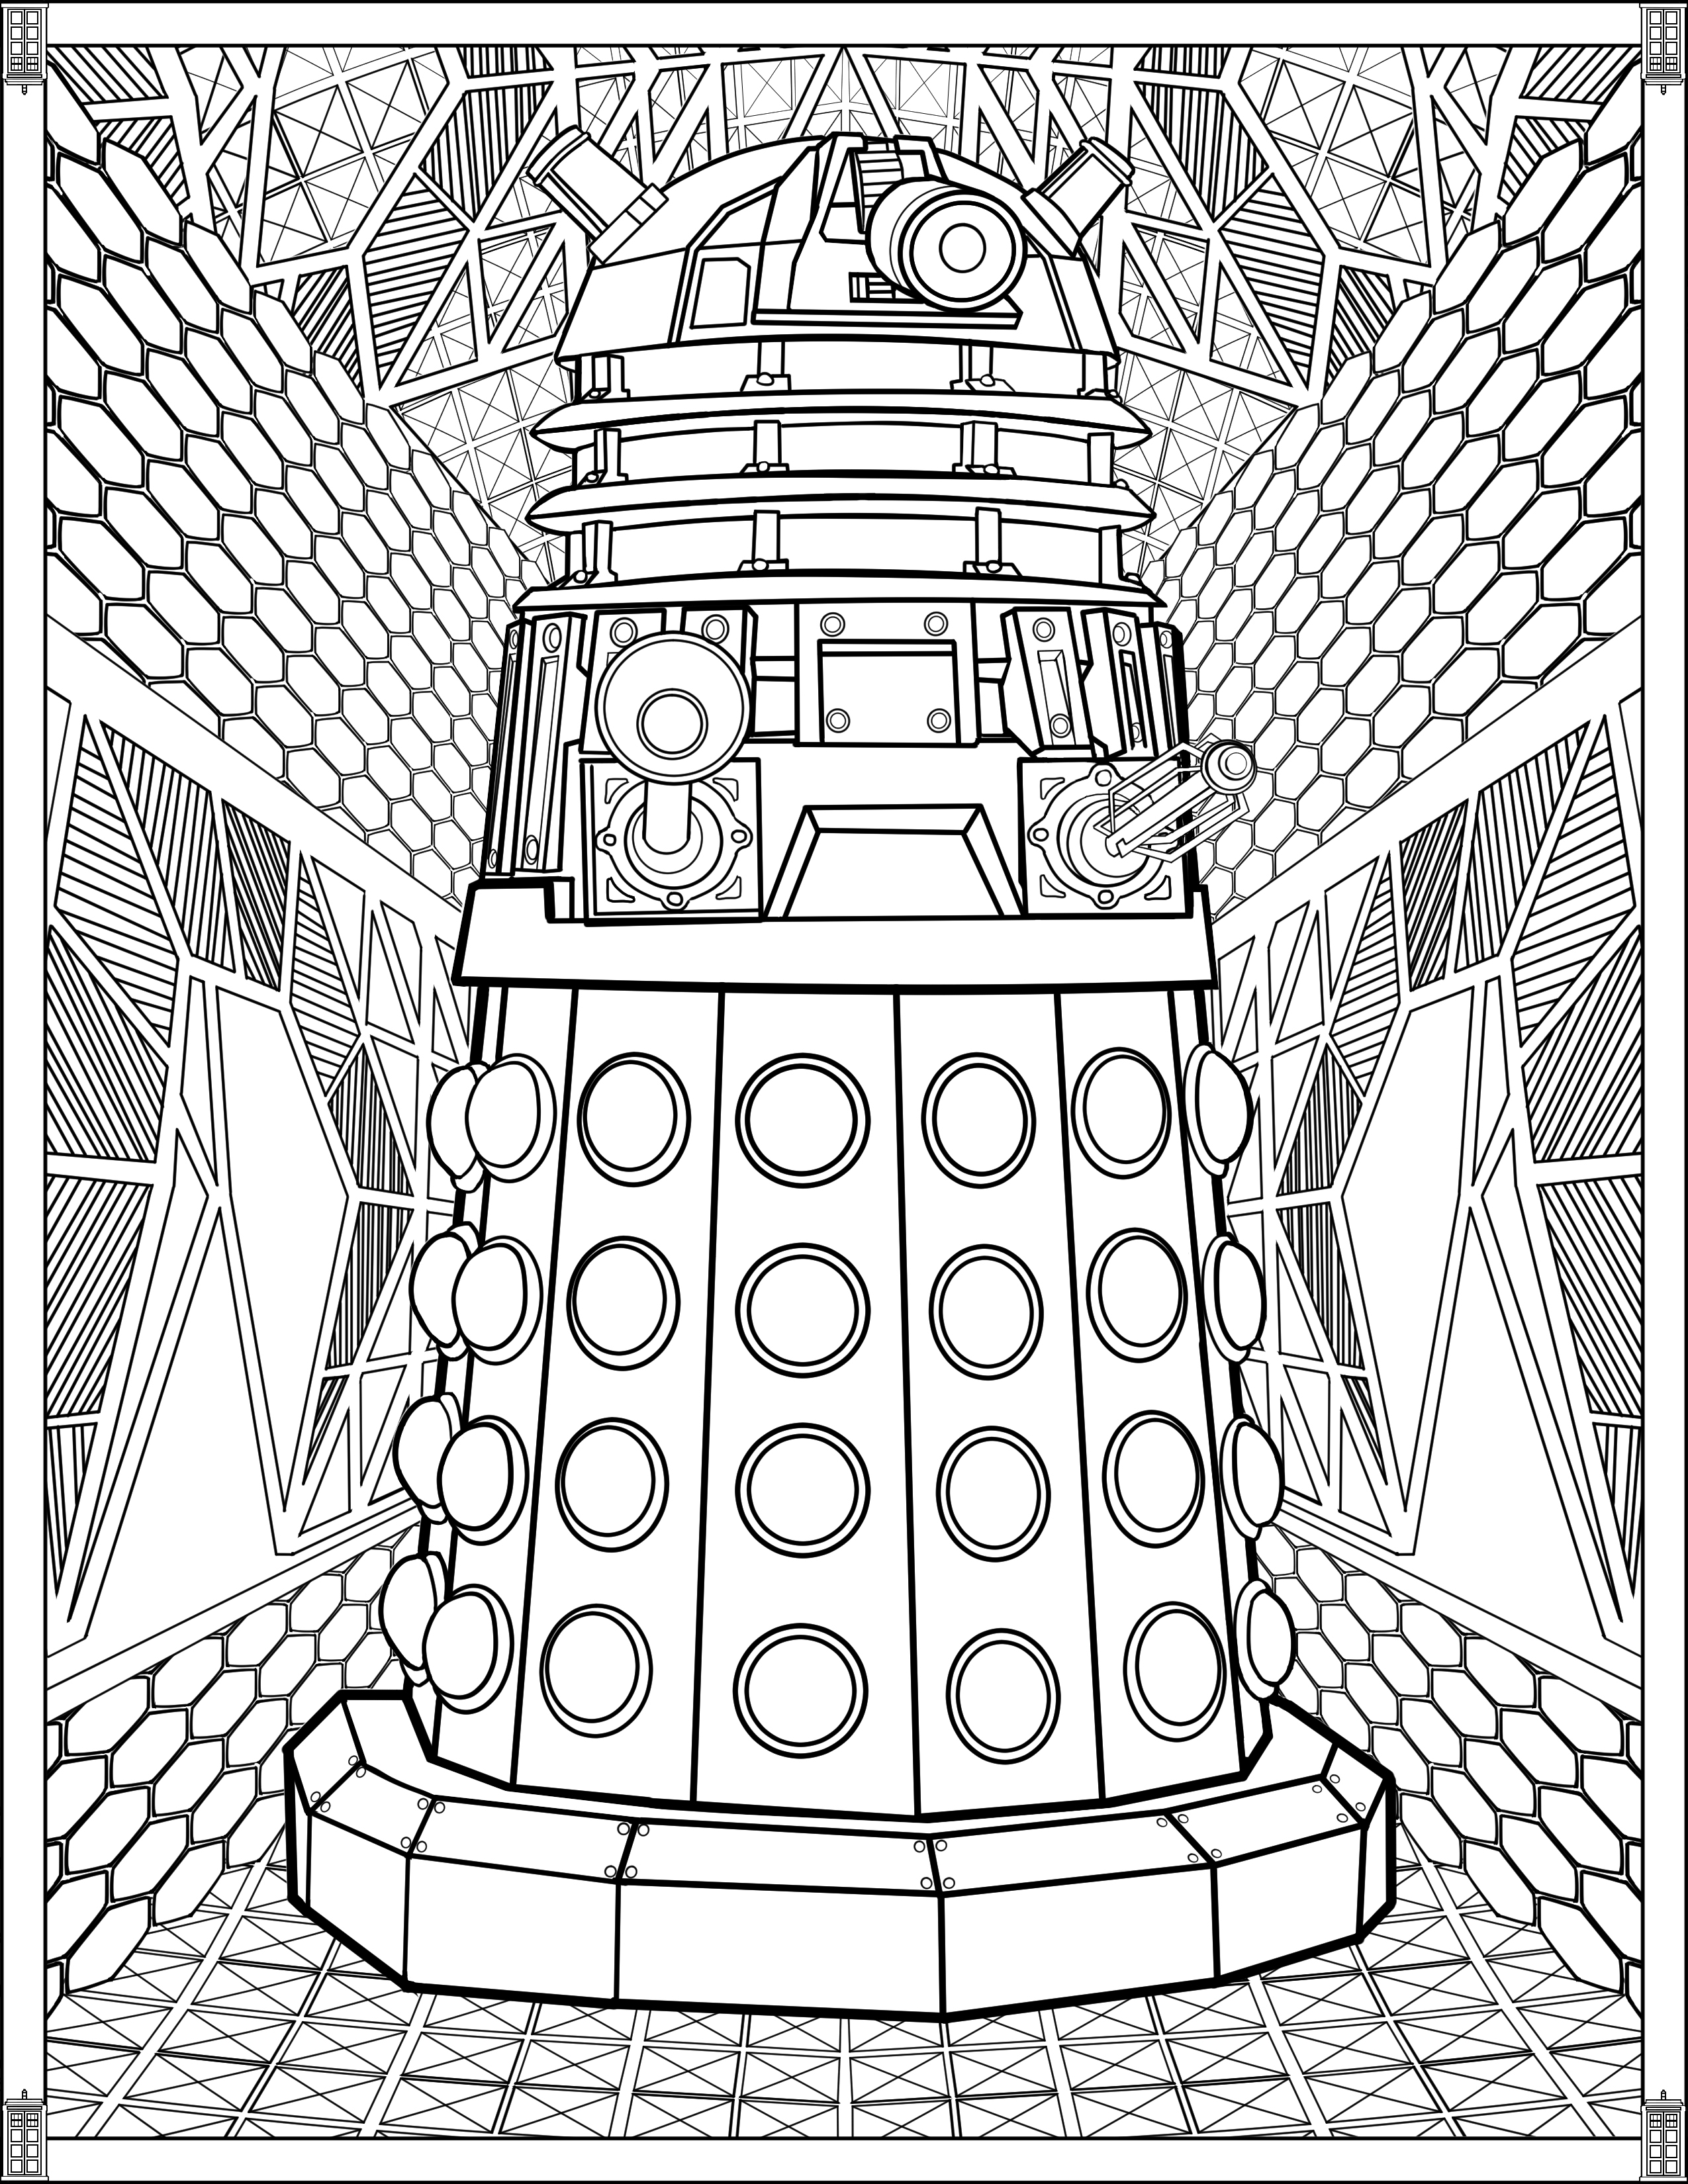 doctor who pictures to colour doctor who wibbly wobbly timey wimey coloring pages colour doctor pictures to who